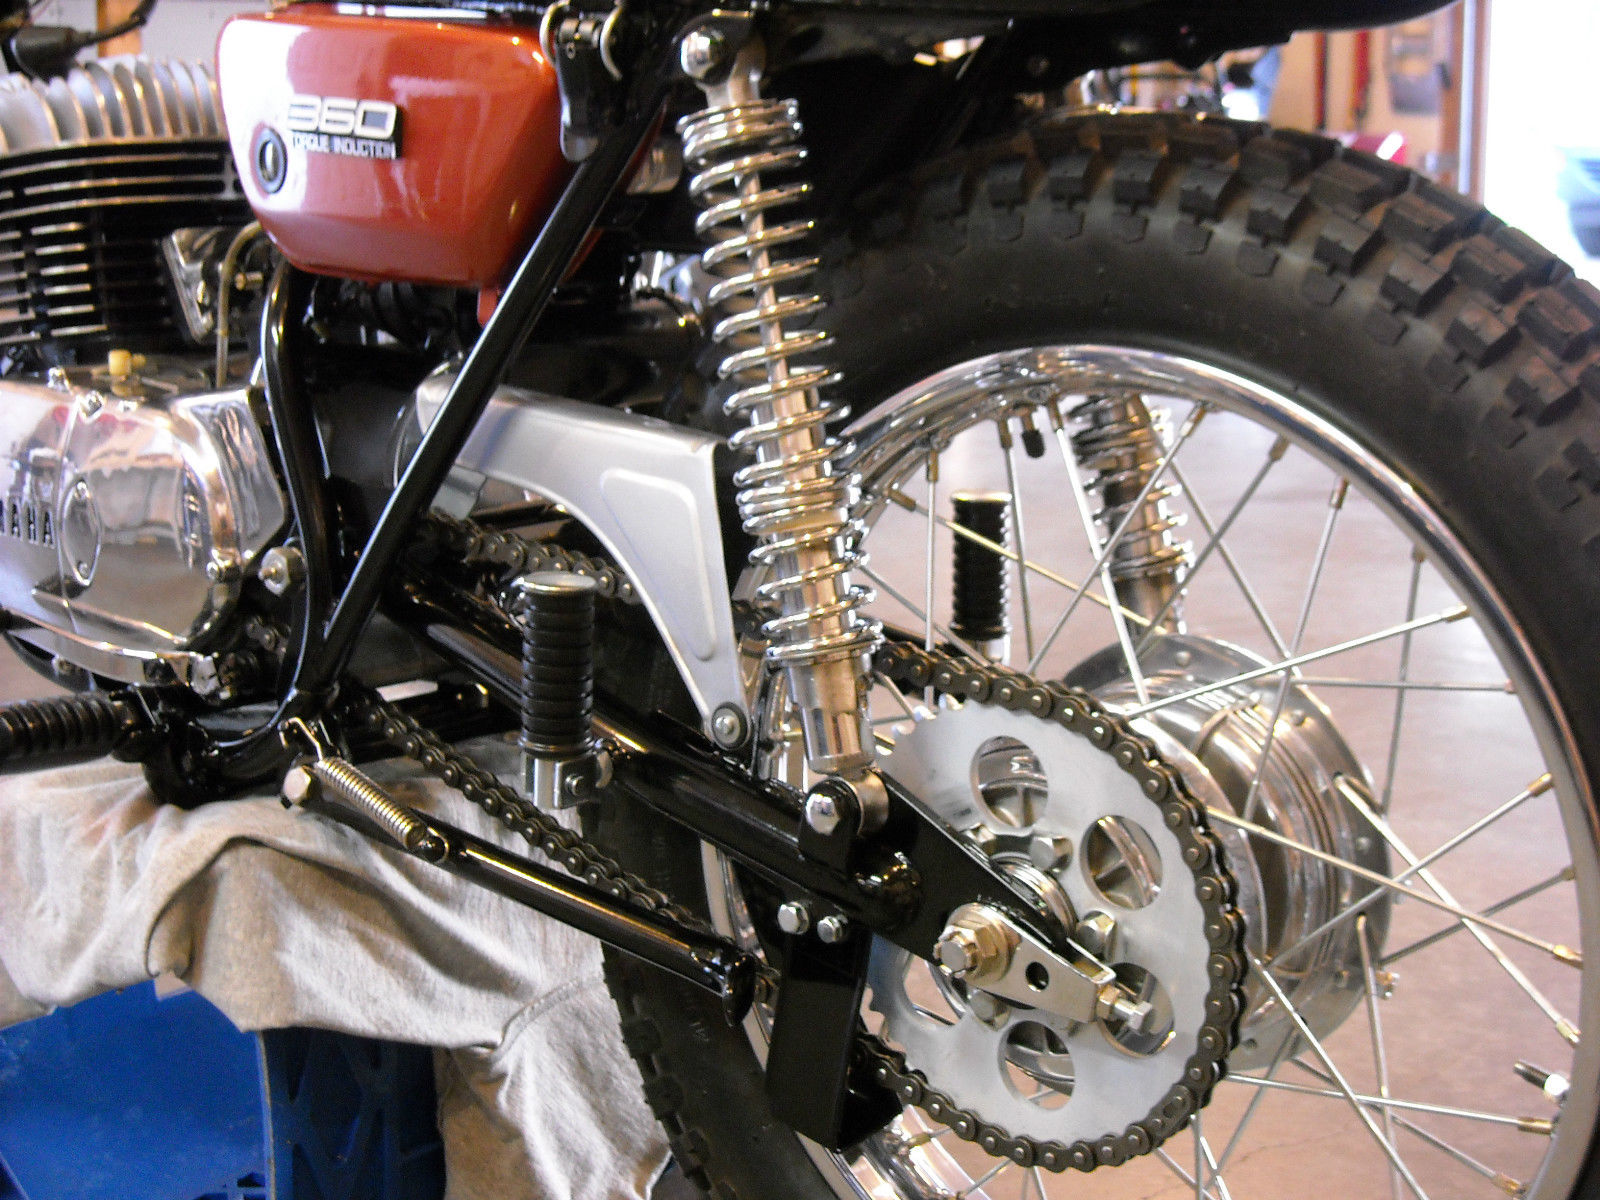 Yamaha 360 RT3 - 1973 - Swing Arm, Chain and Sprocket, Rear Footrest and Chain Guard.